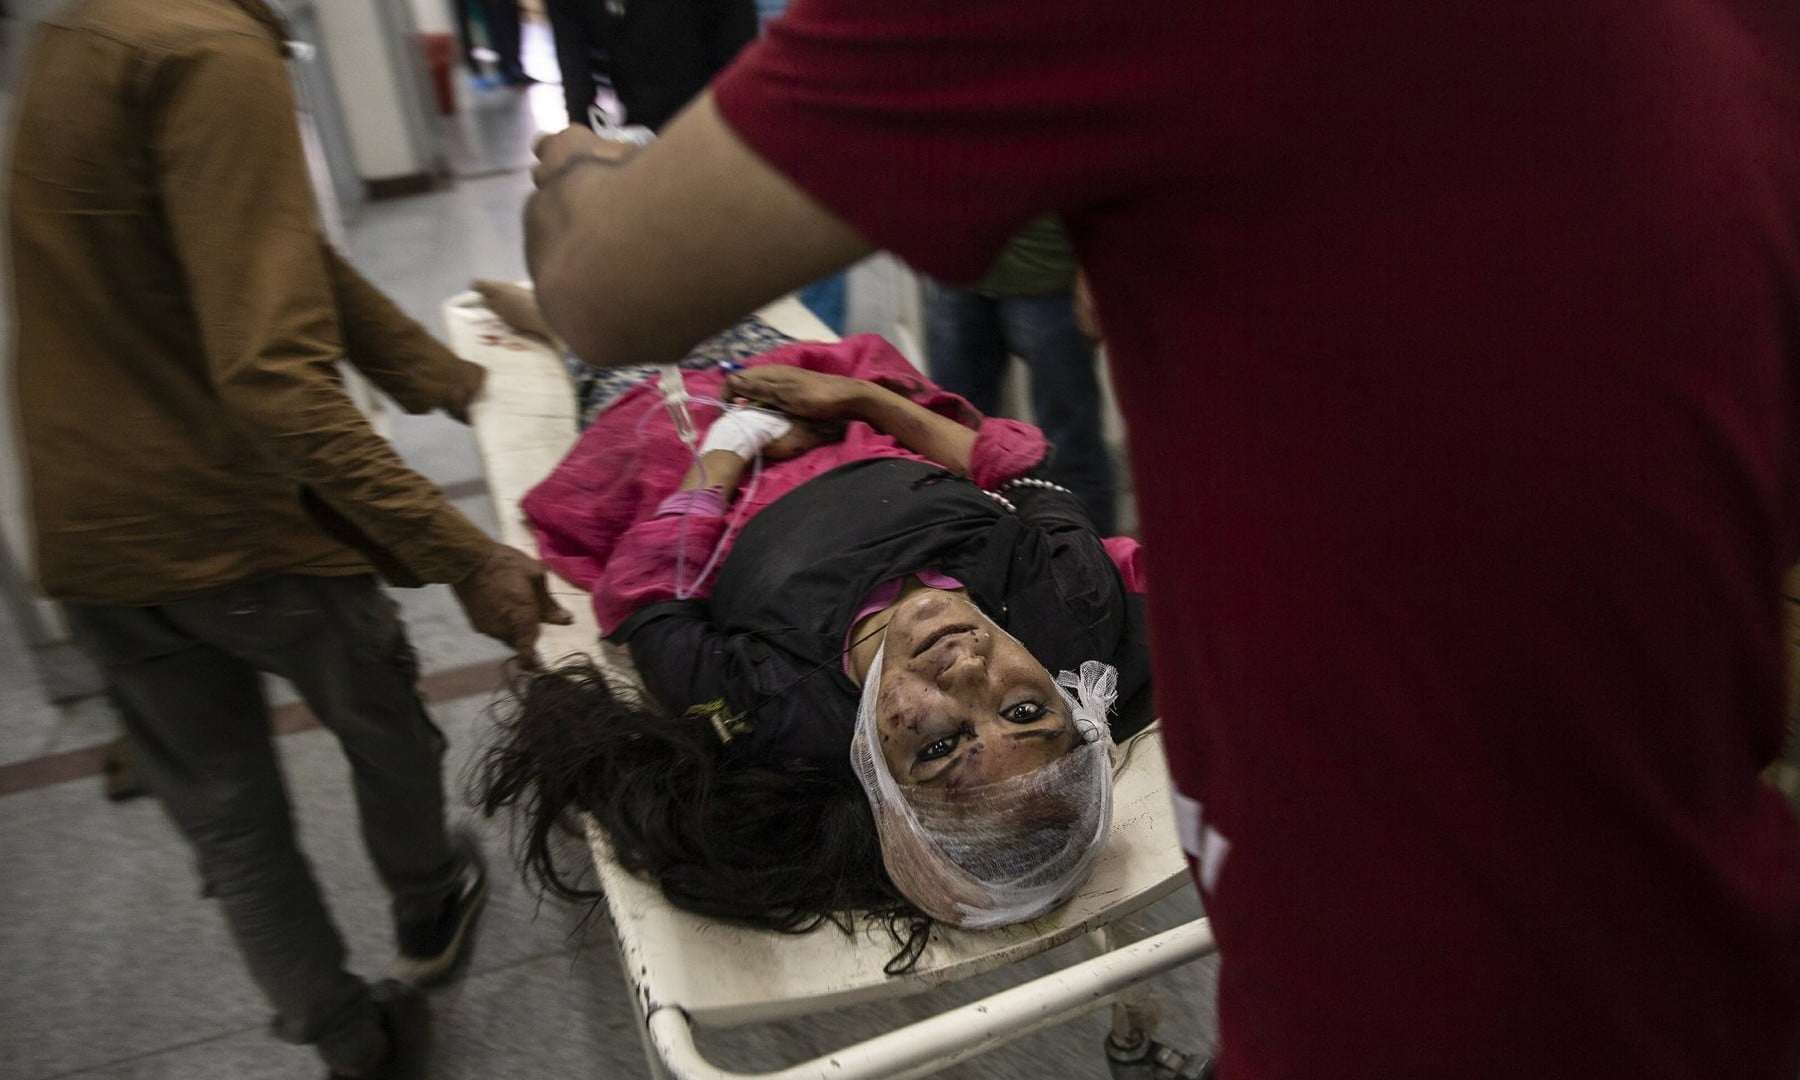 A wounded woman is carried on a stretcher for treatment after she was injured in a bus accident, at a local hospital in Srinagar on June 27, 2019.  — AP/Dar Yasin